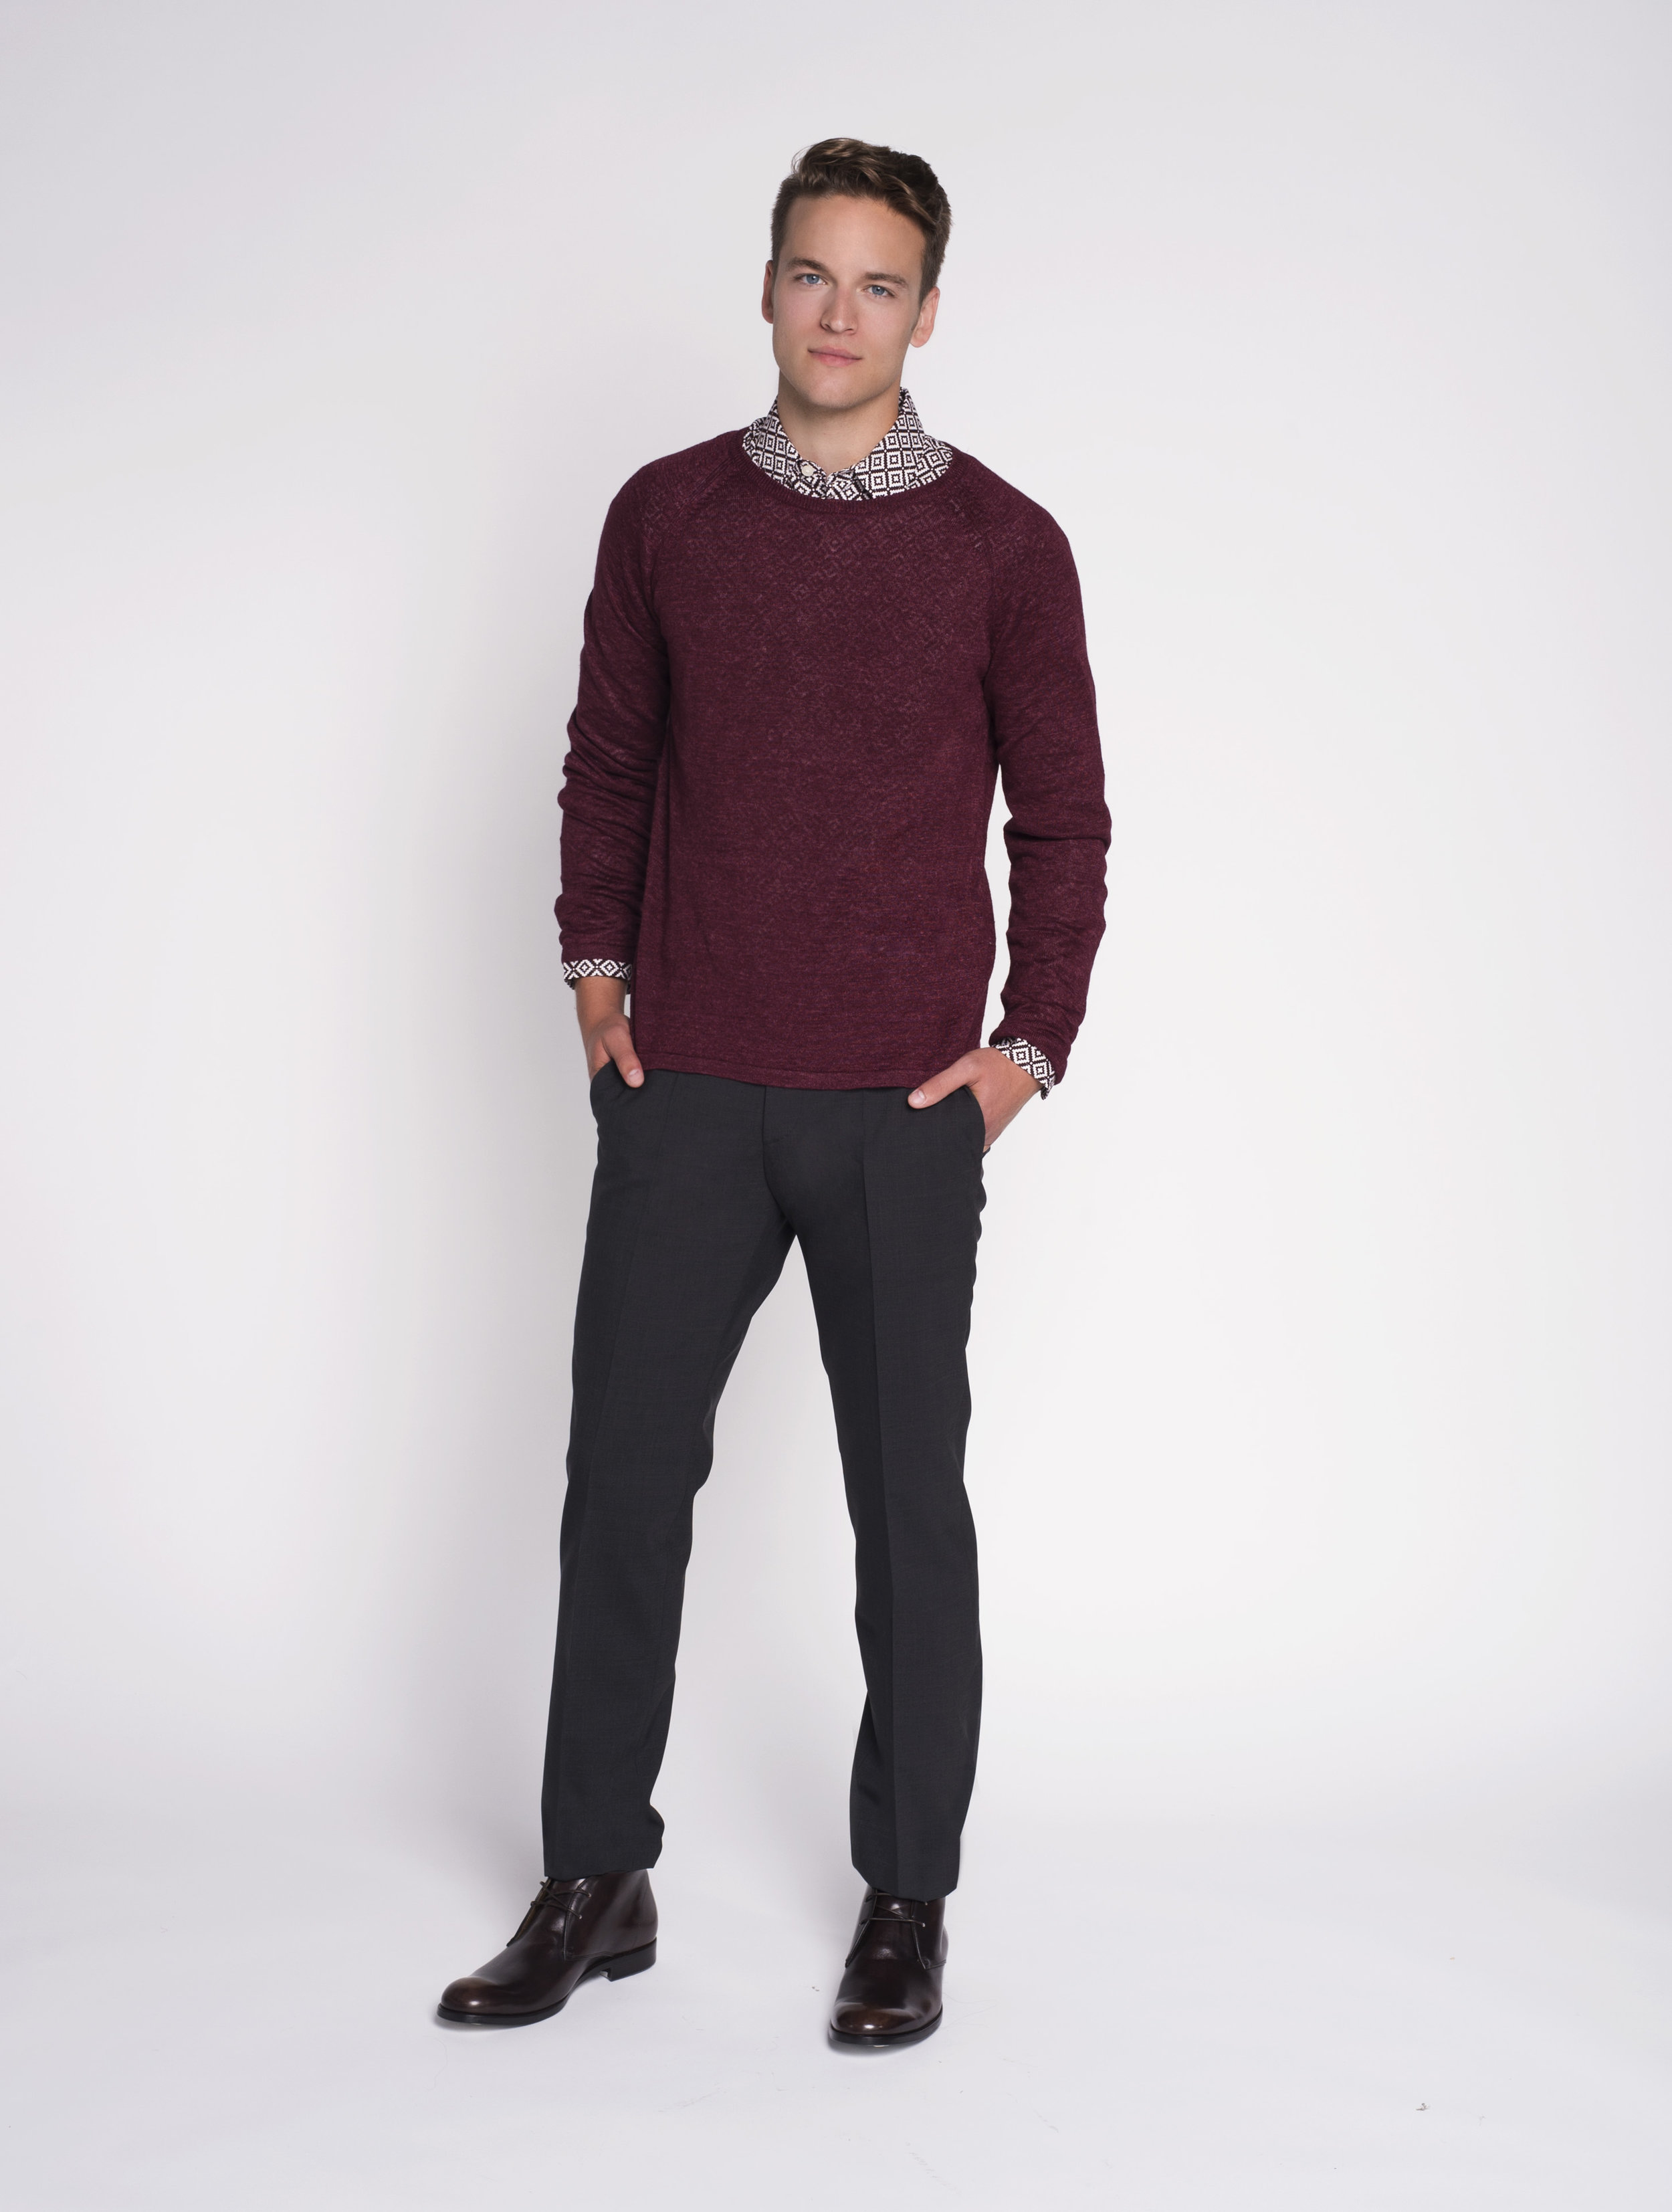 CALGARY PERSONAL STYLIST BUSINESS CASUAL JOB INTERVIEW WEAR